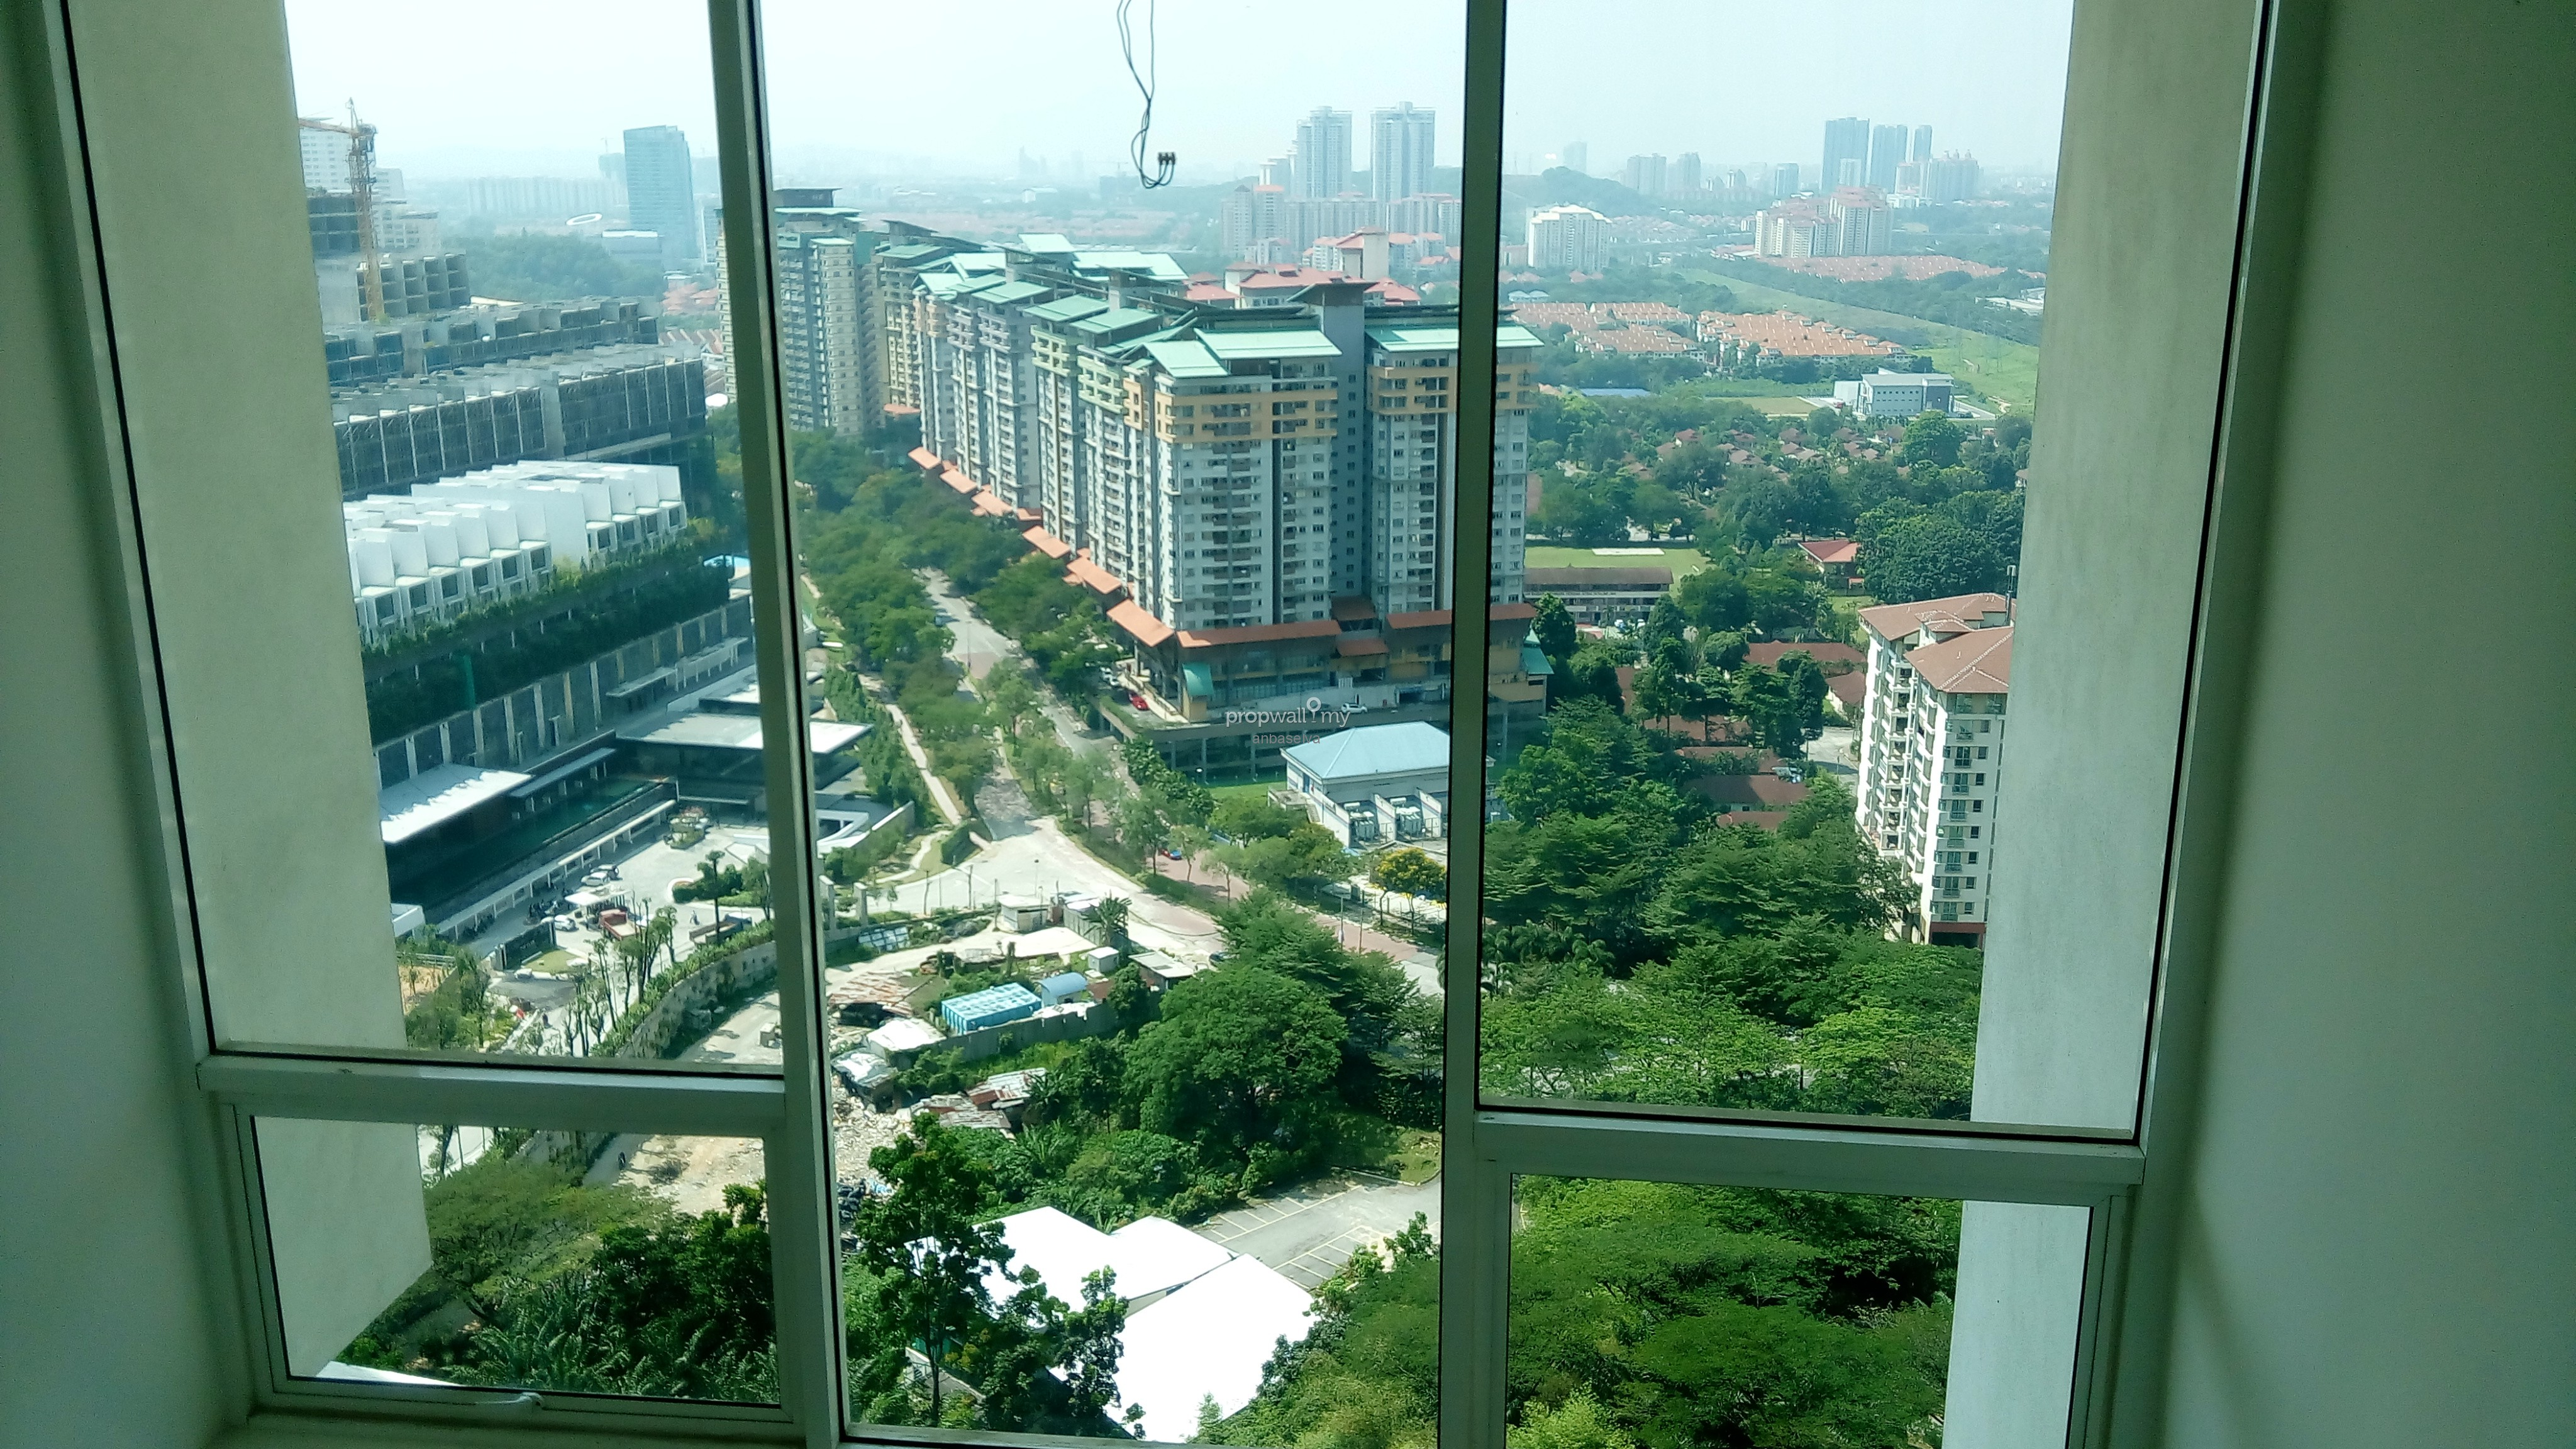 Armanee terrace ii damansara perdana condominium for sale for Armanee terrace 2